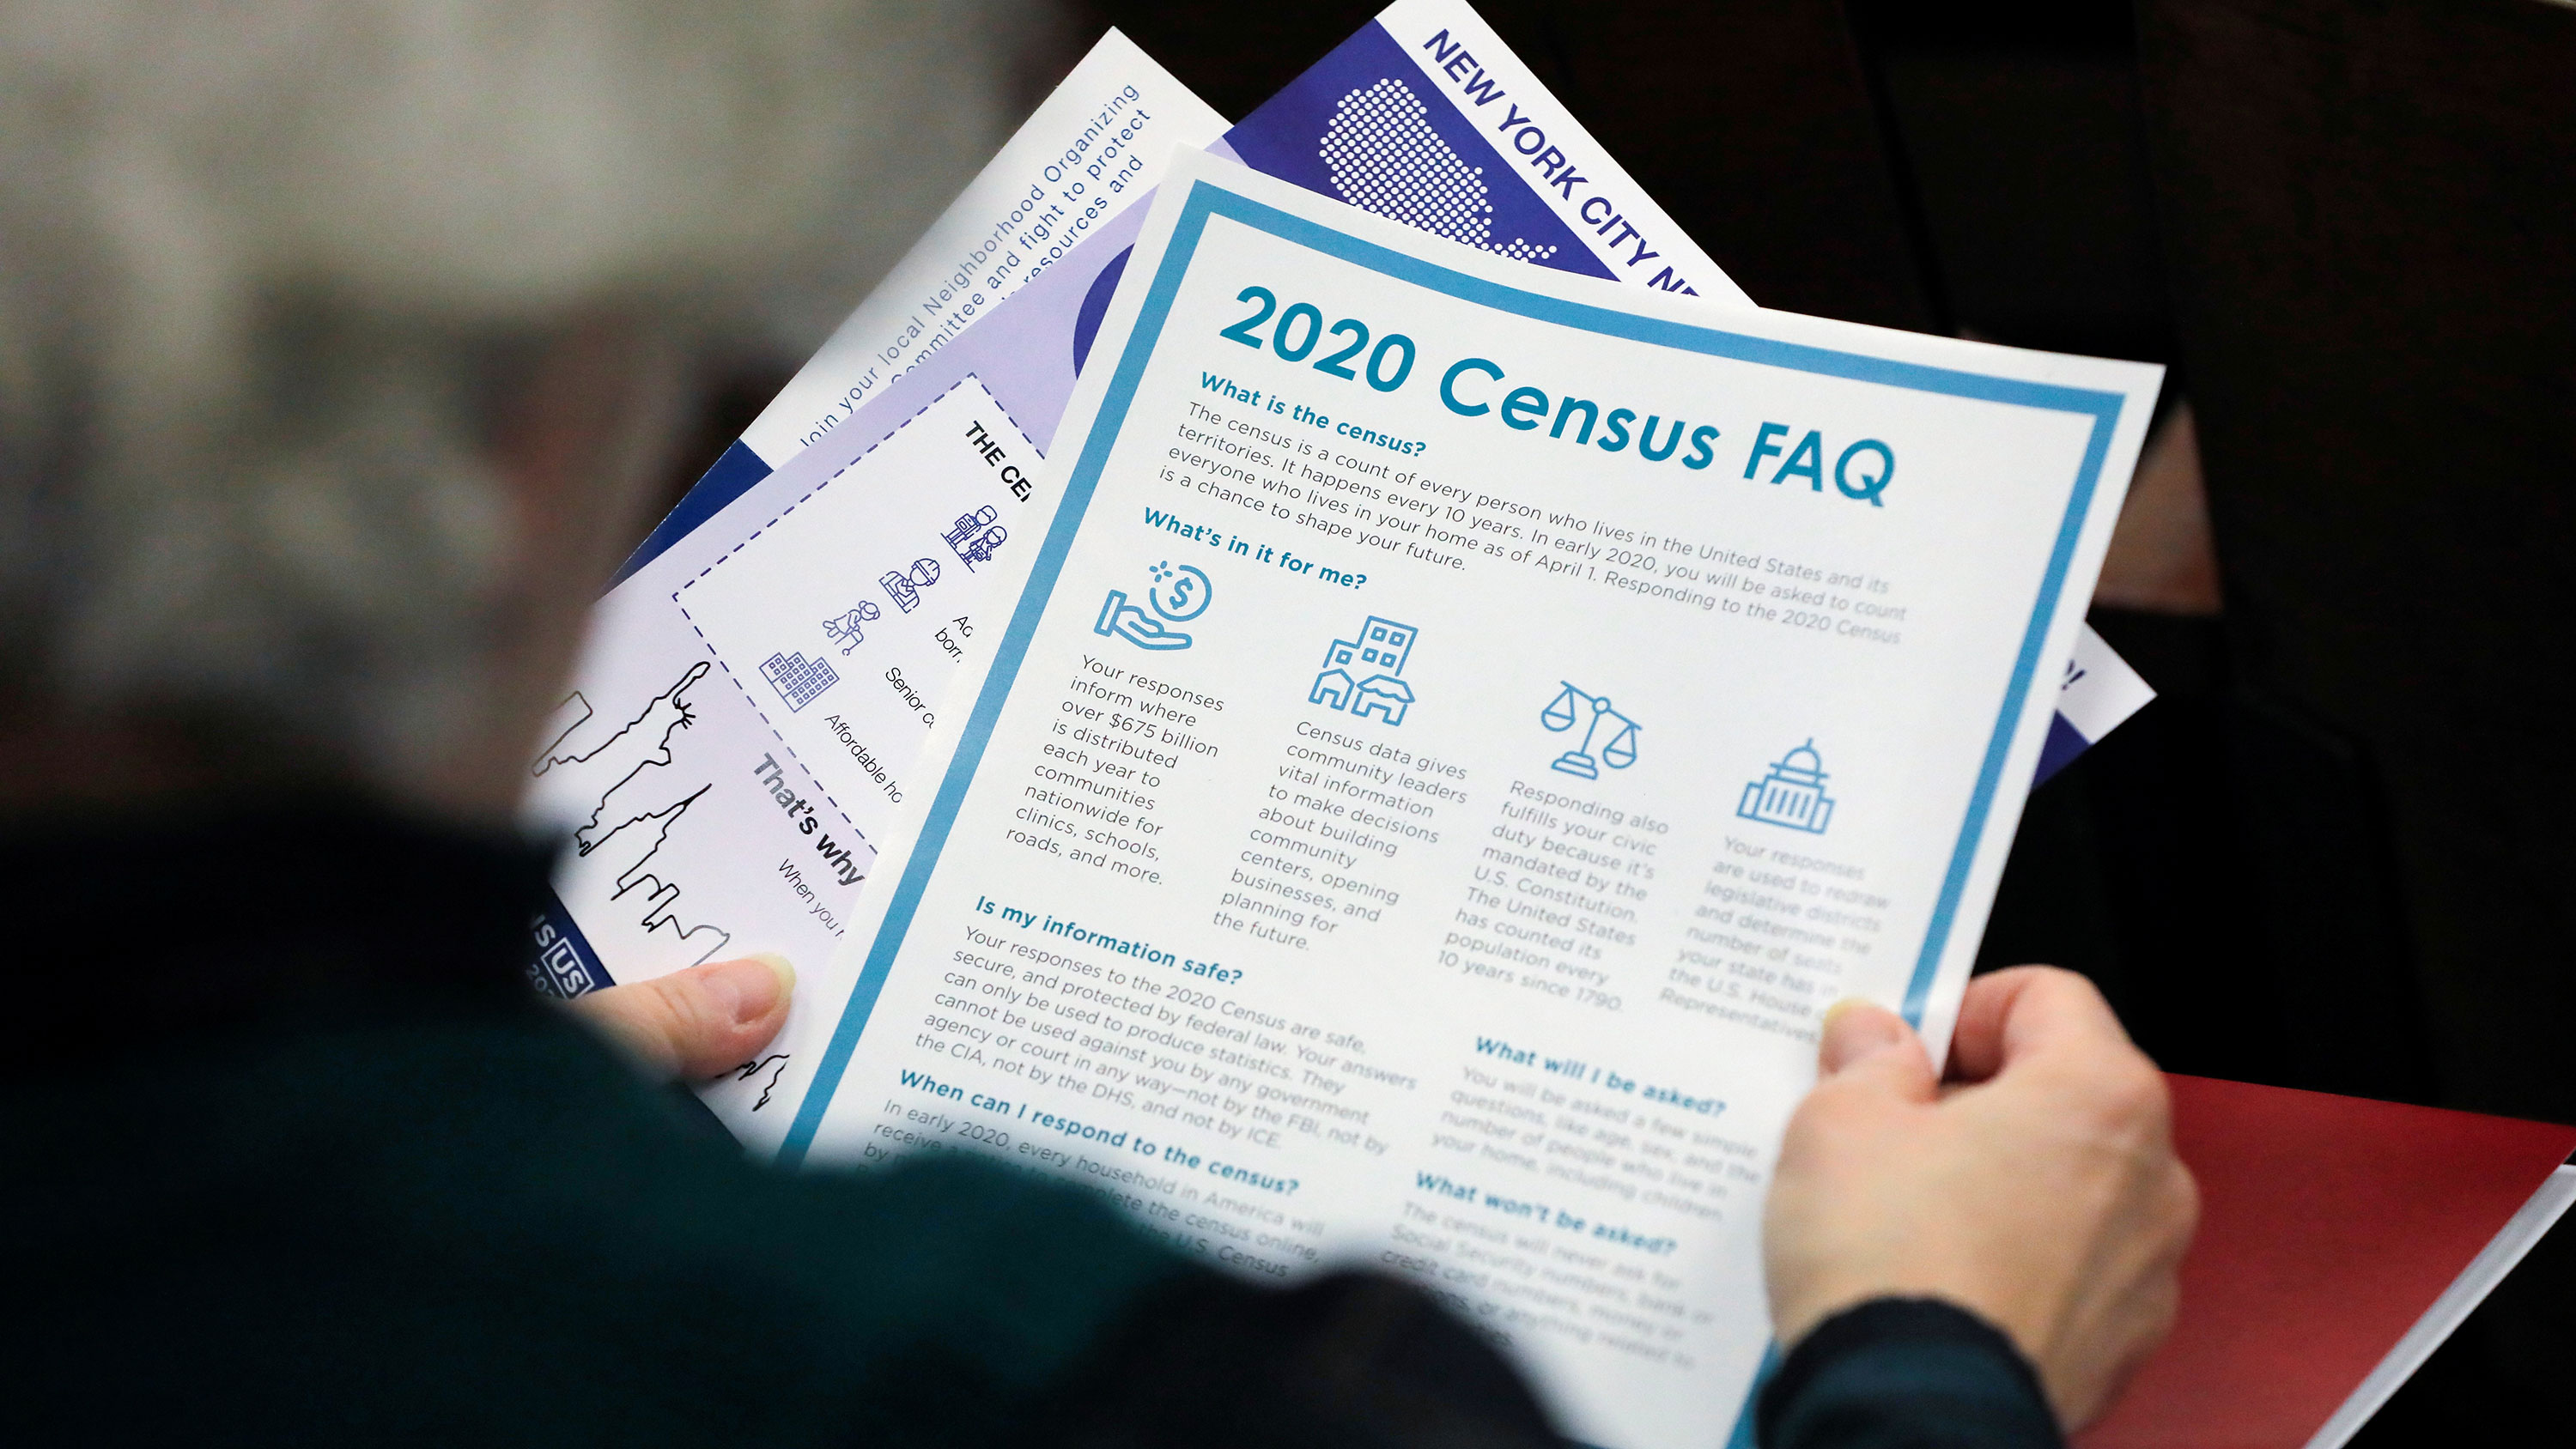 Government watchdog probing controversial Census hirings